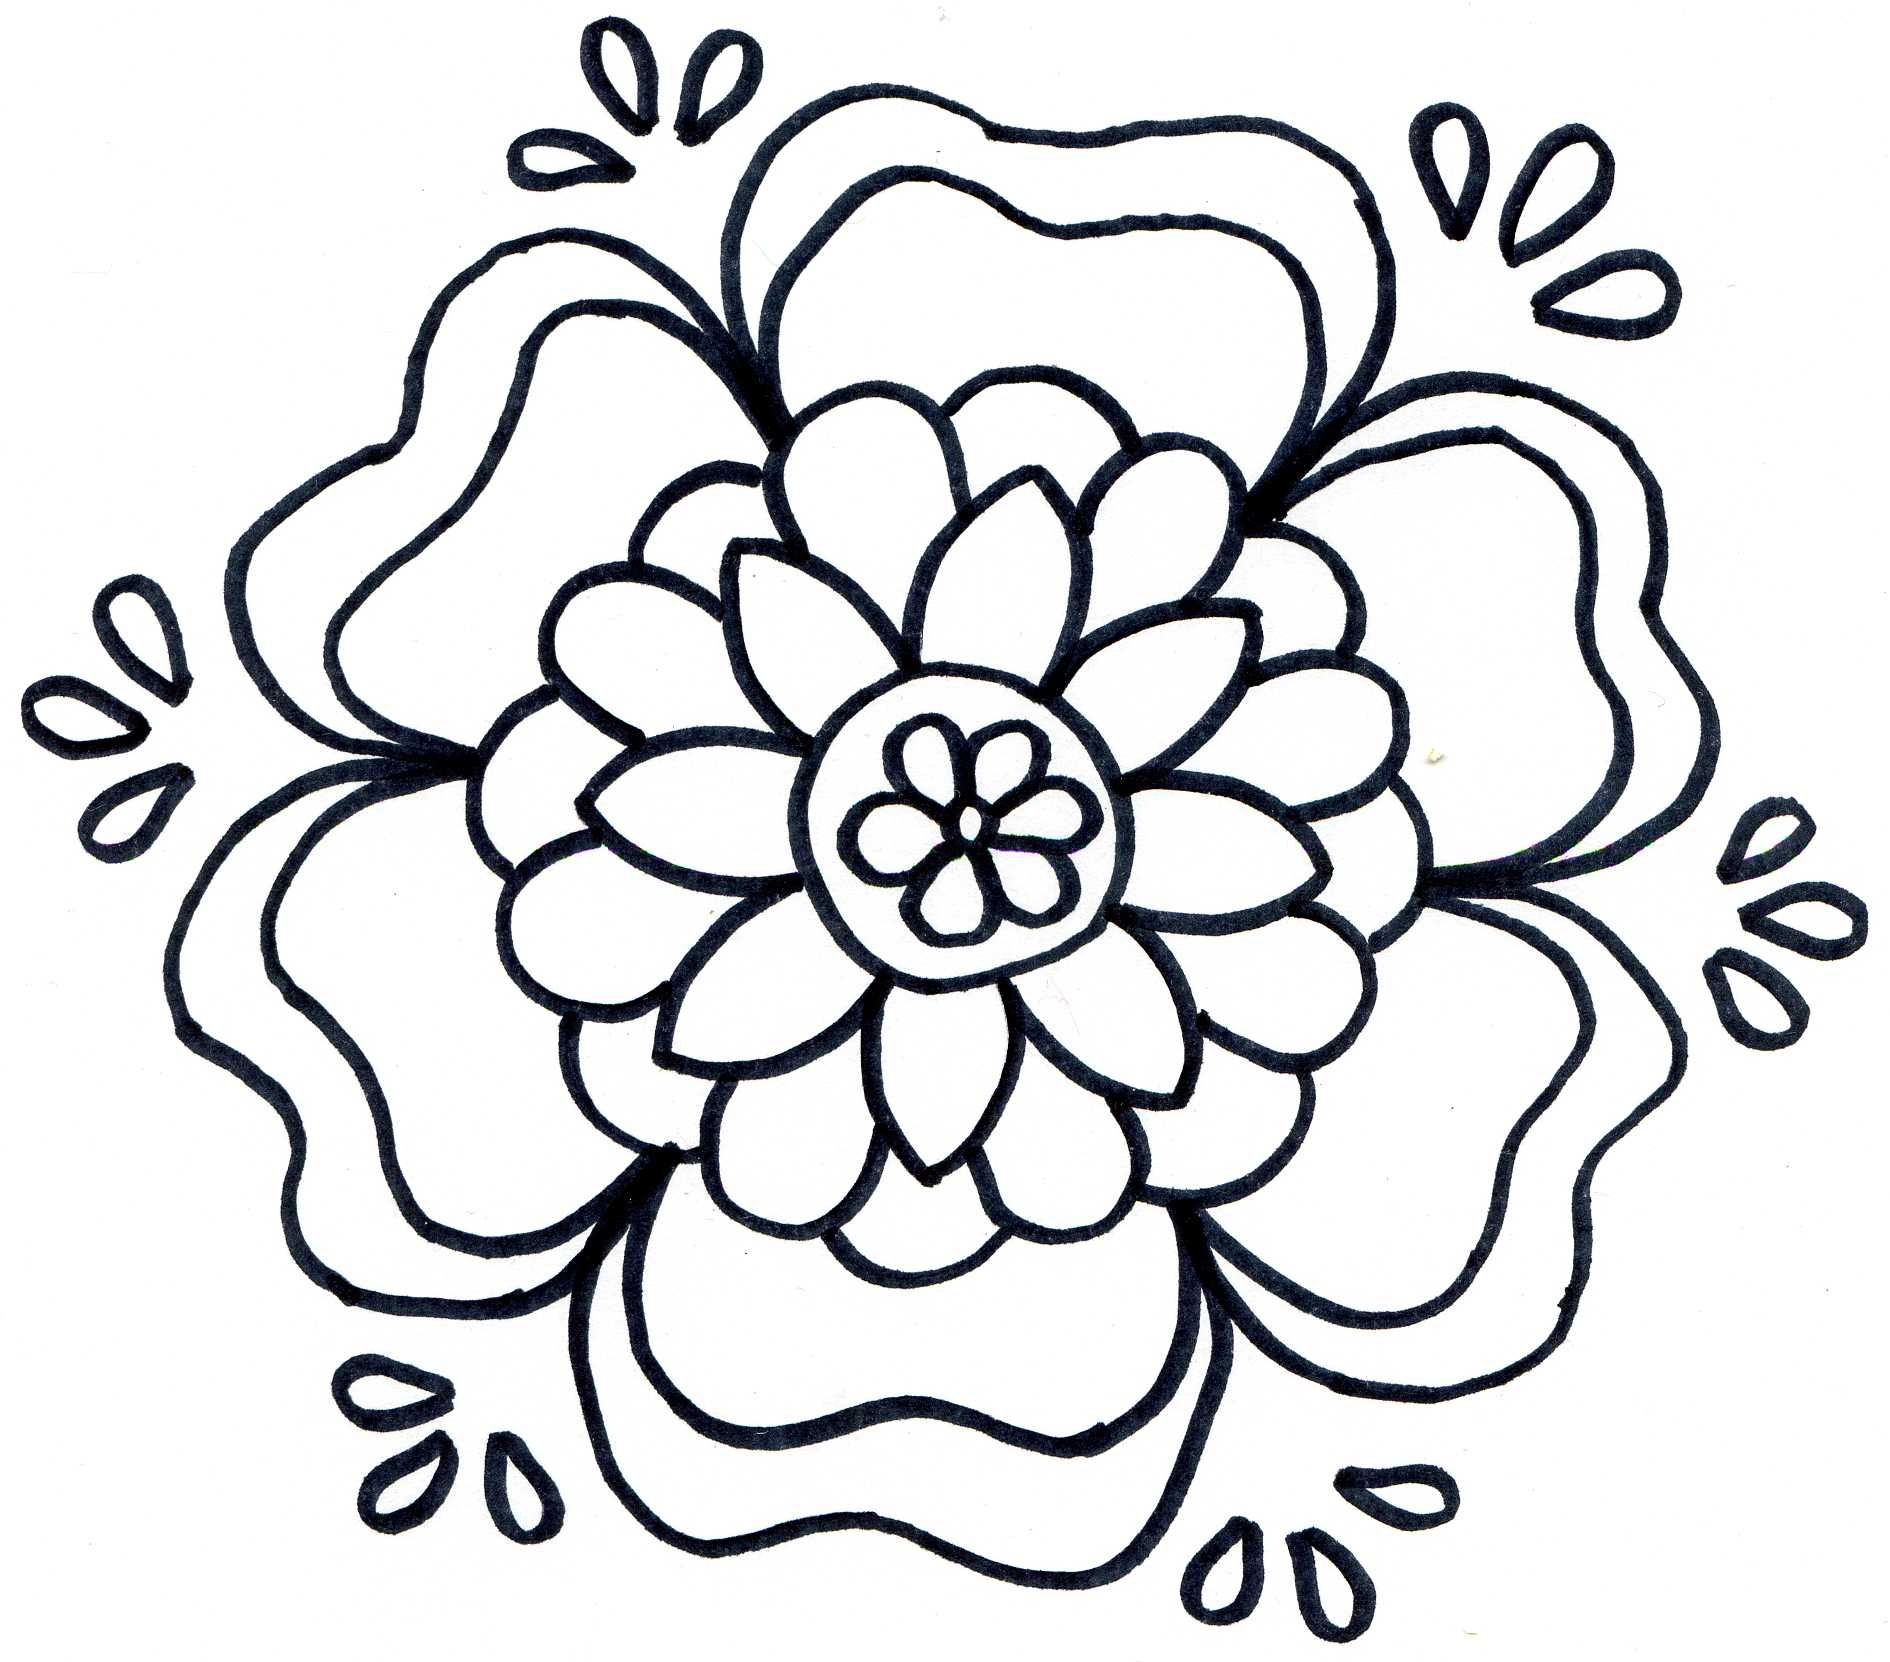 rosmaling coloring pages google search patterns and embroidery